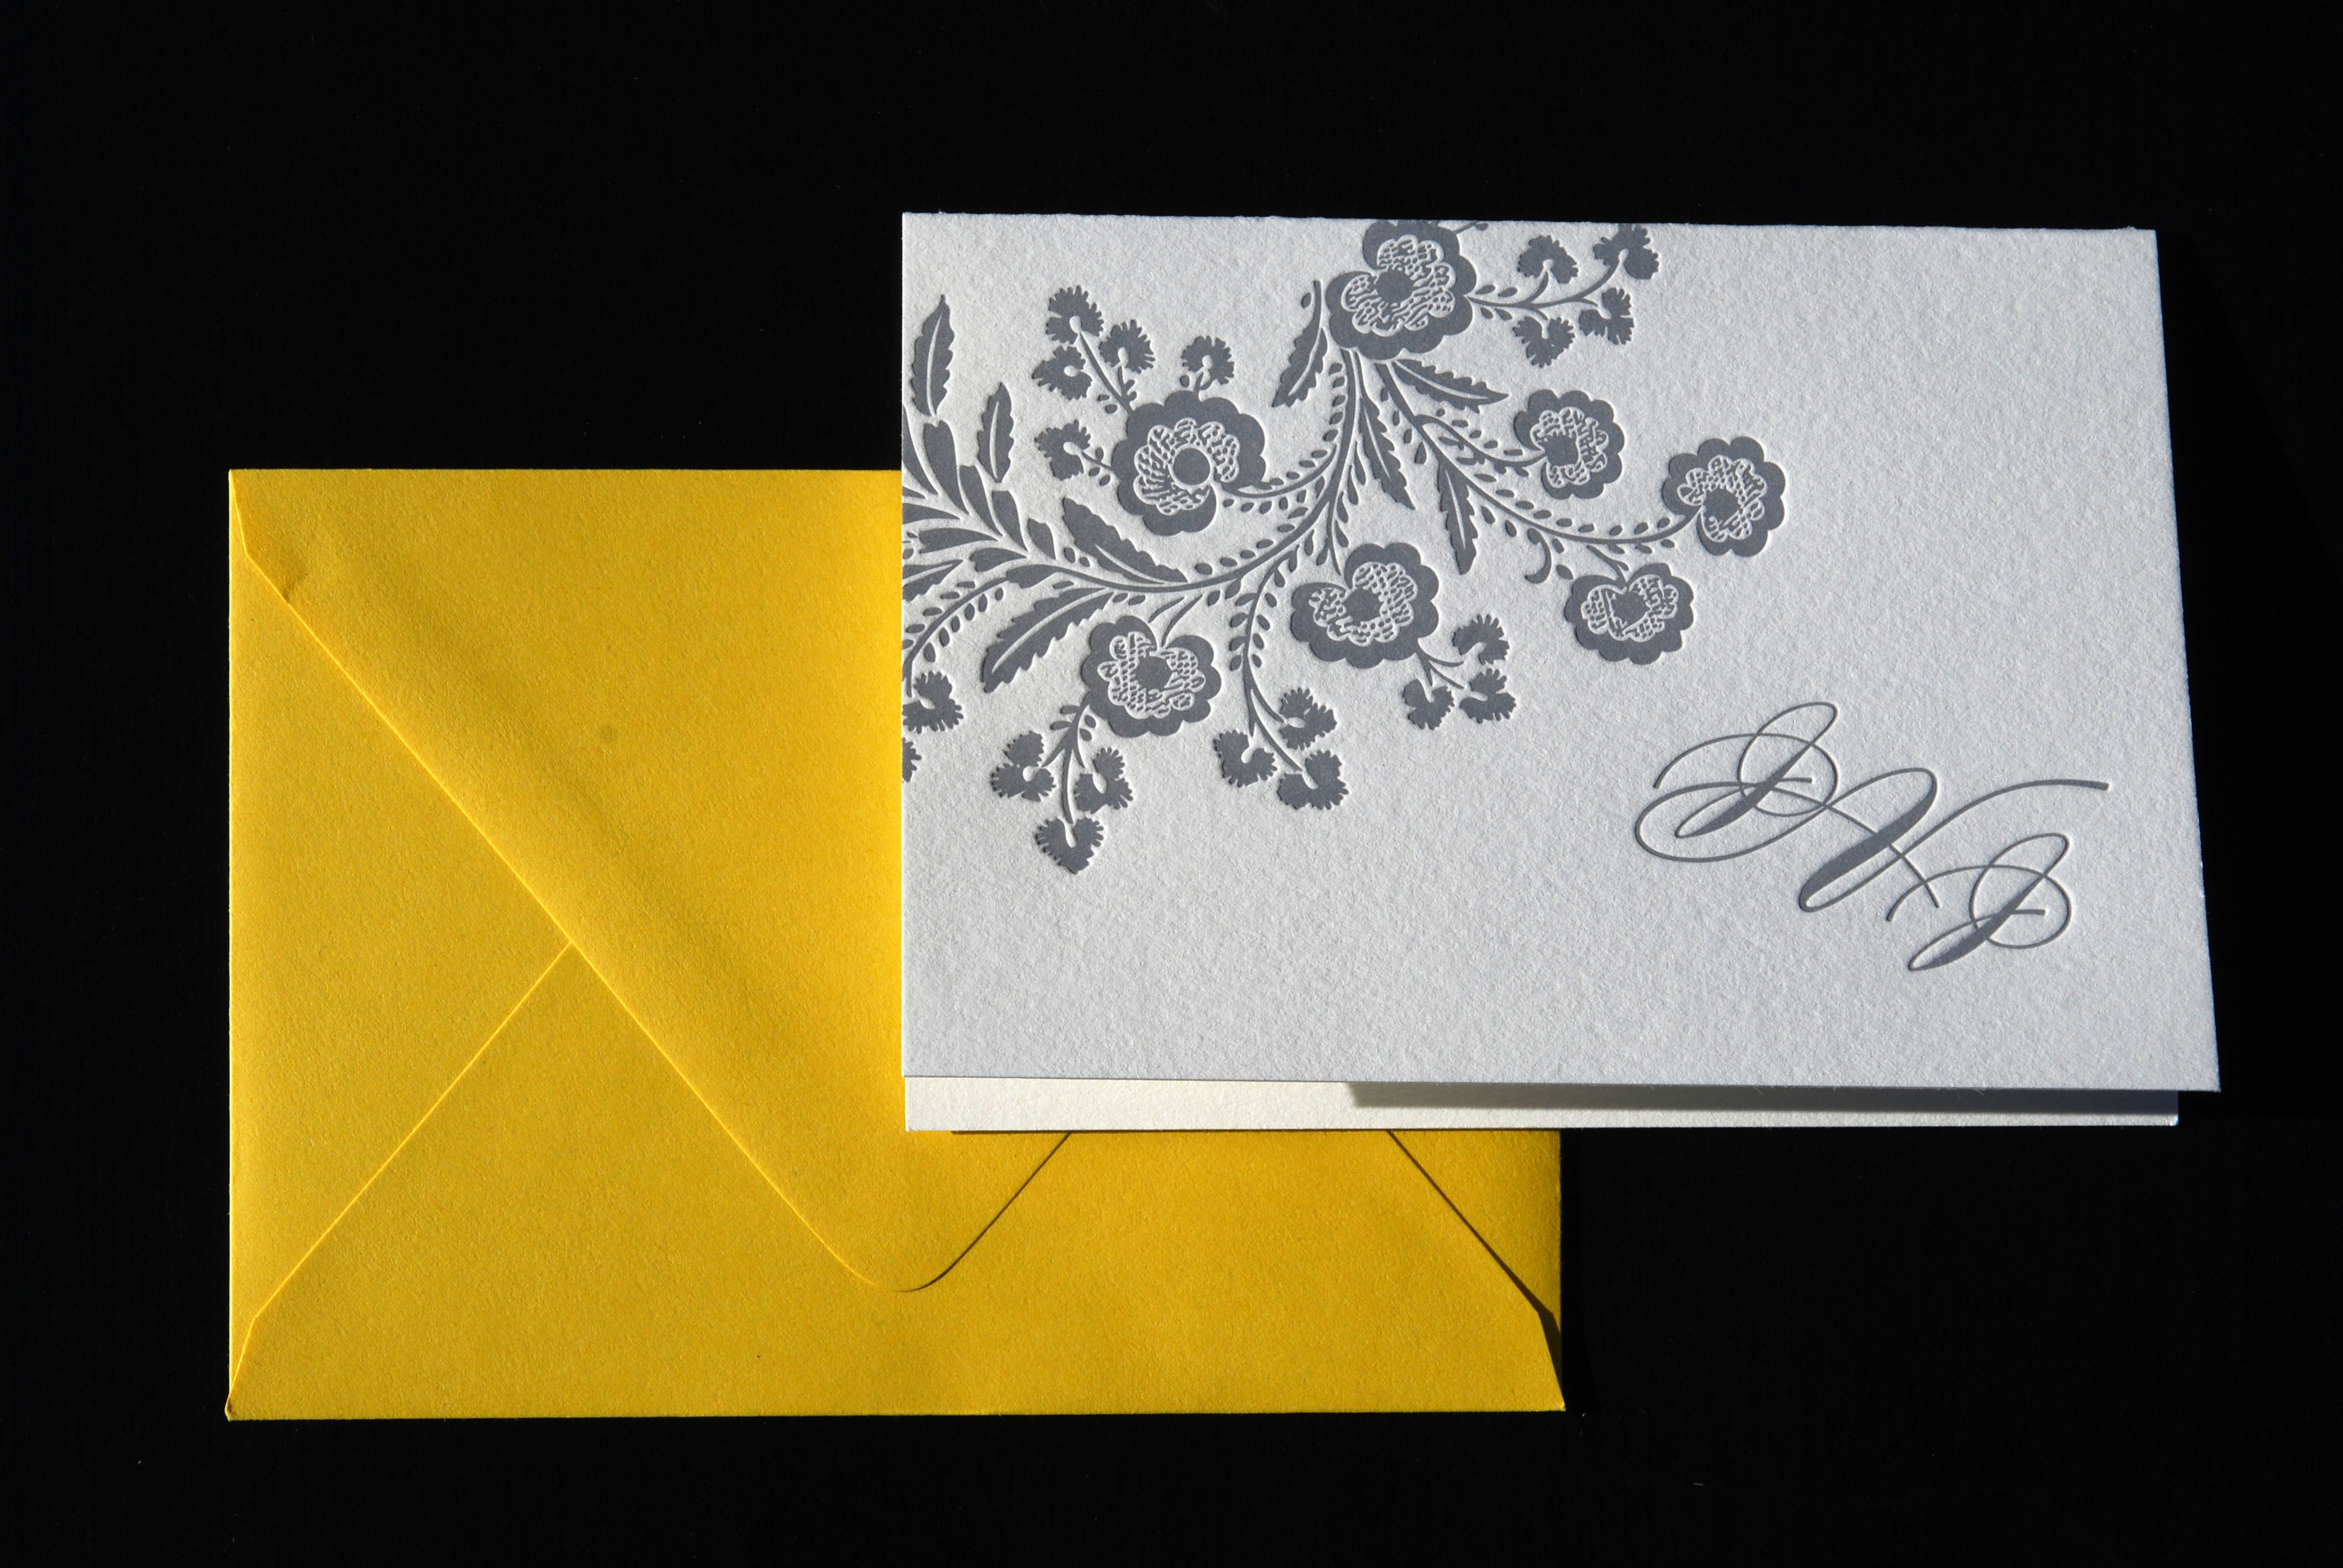 Stationery, yellow, gray, invitation, Modern, Classic, Classic Wedding Invitations, Modern Wedding Invitations, Invitations, Bouquet, Monogram, Floral, Letterpress, Fresh, The aerialist press